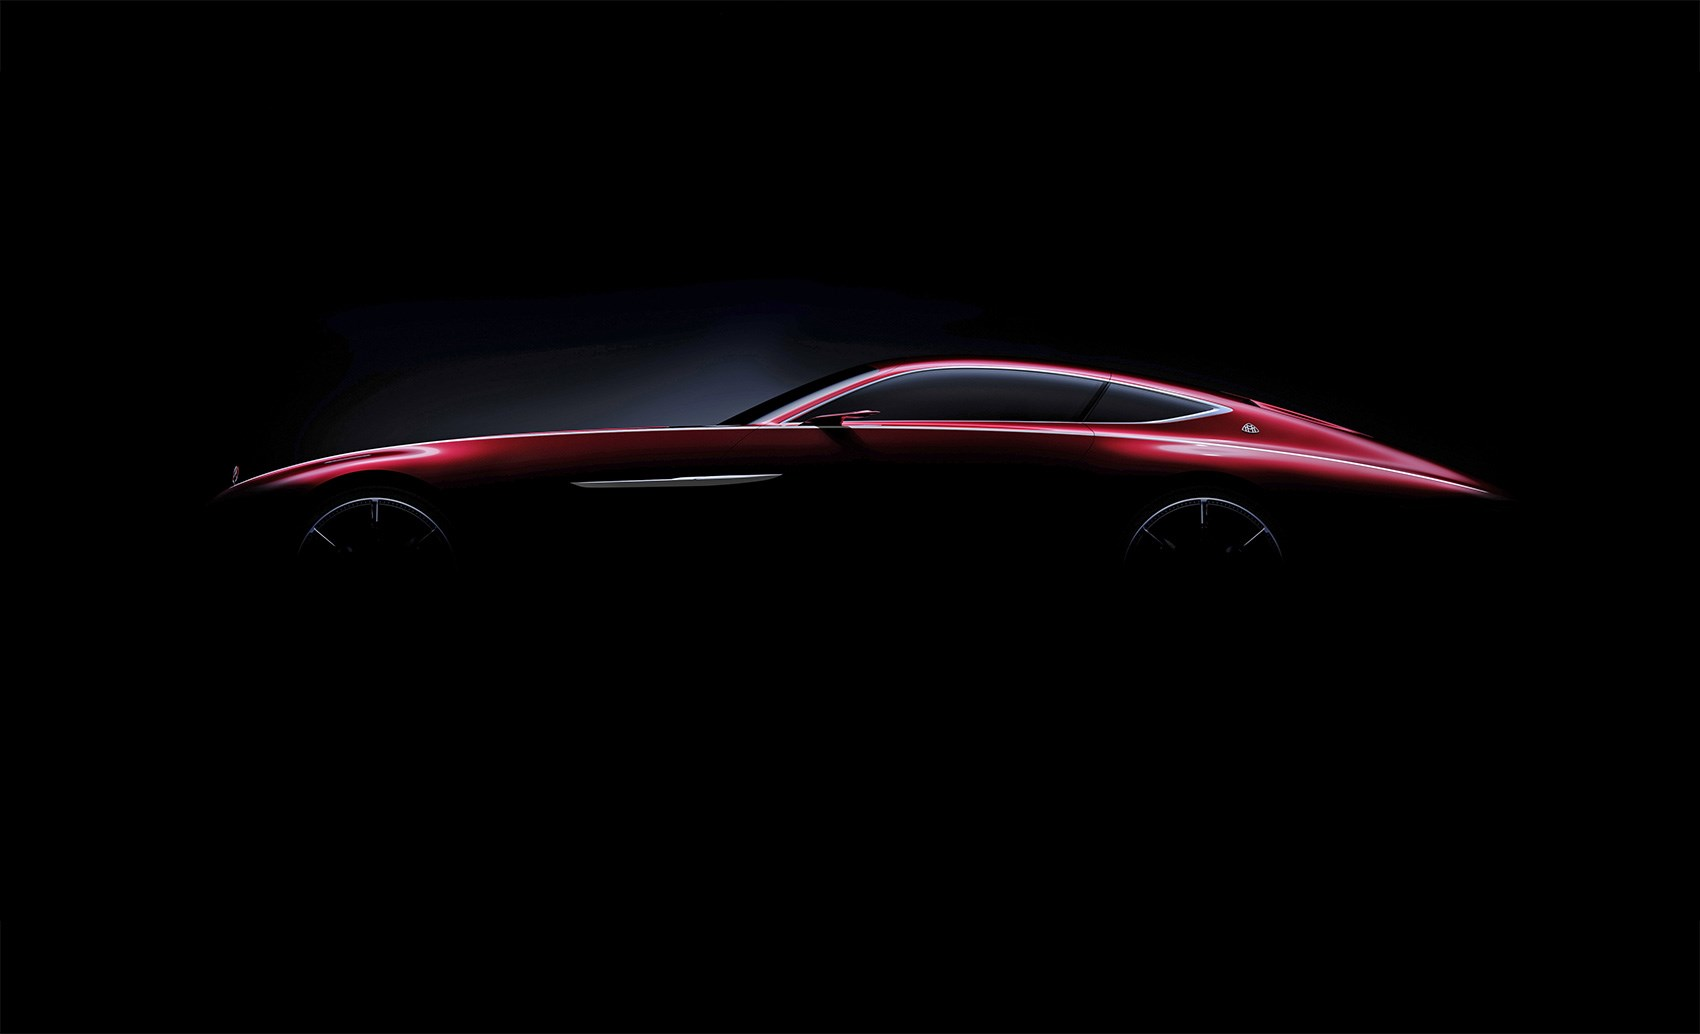 Will this Maybach luxury coupé concept wow the wealthy at Pebble Beach?